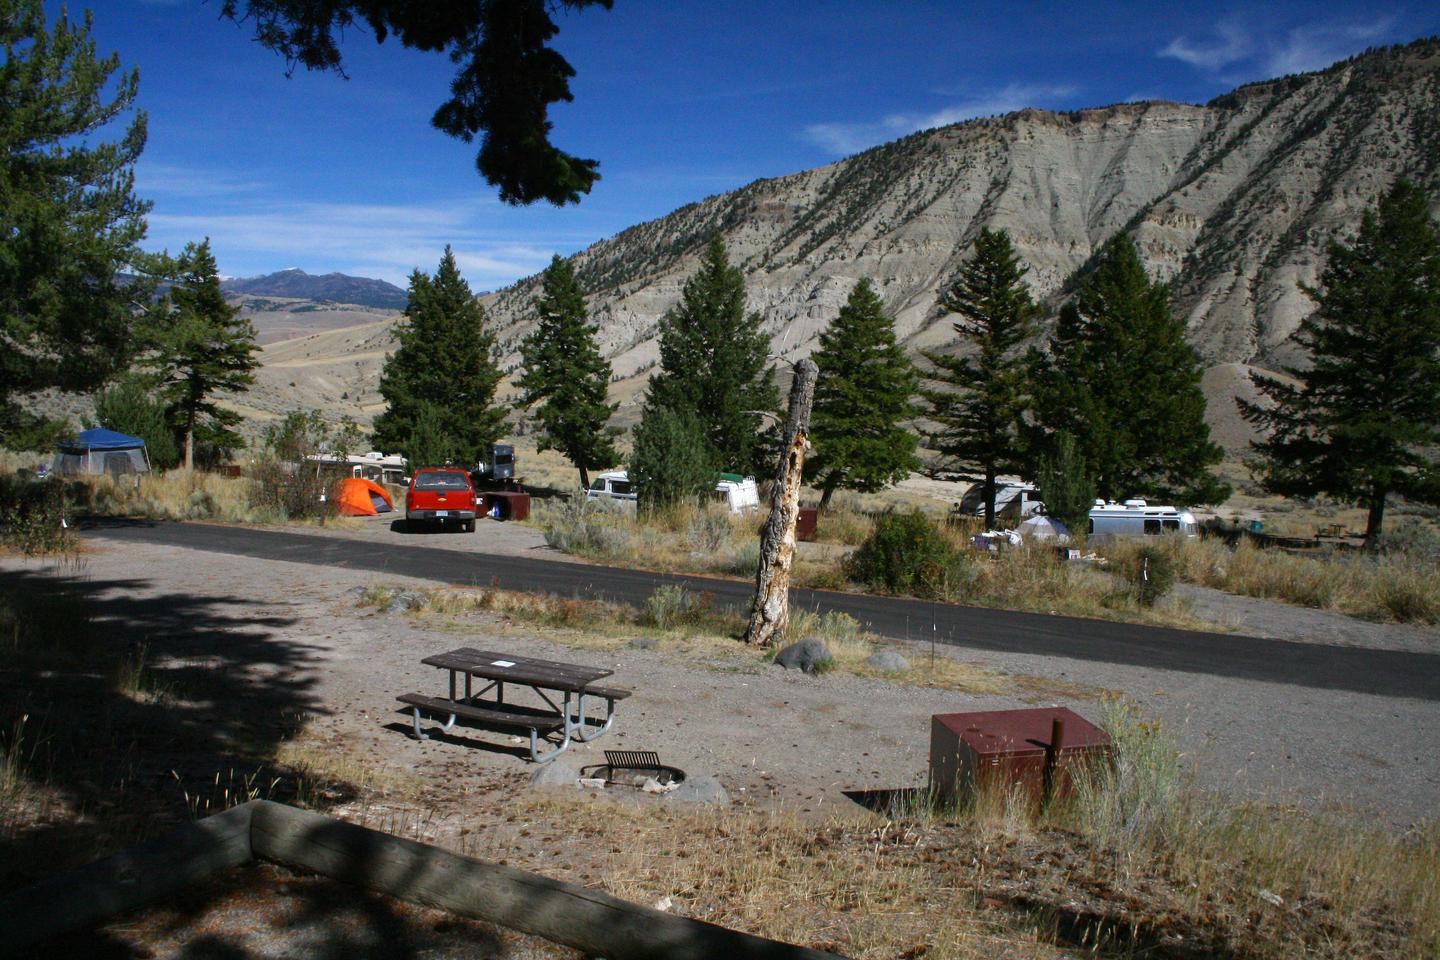 Mammoth Hot Springs Campground Site 76.Mammoth Campsite #76, looking north